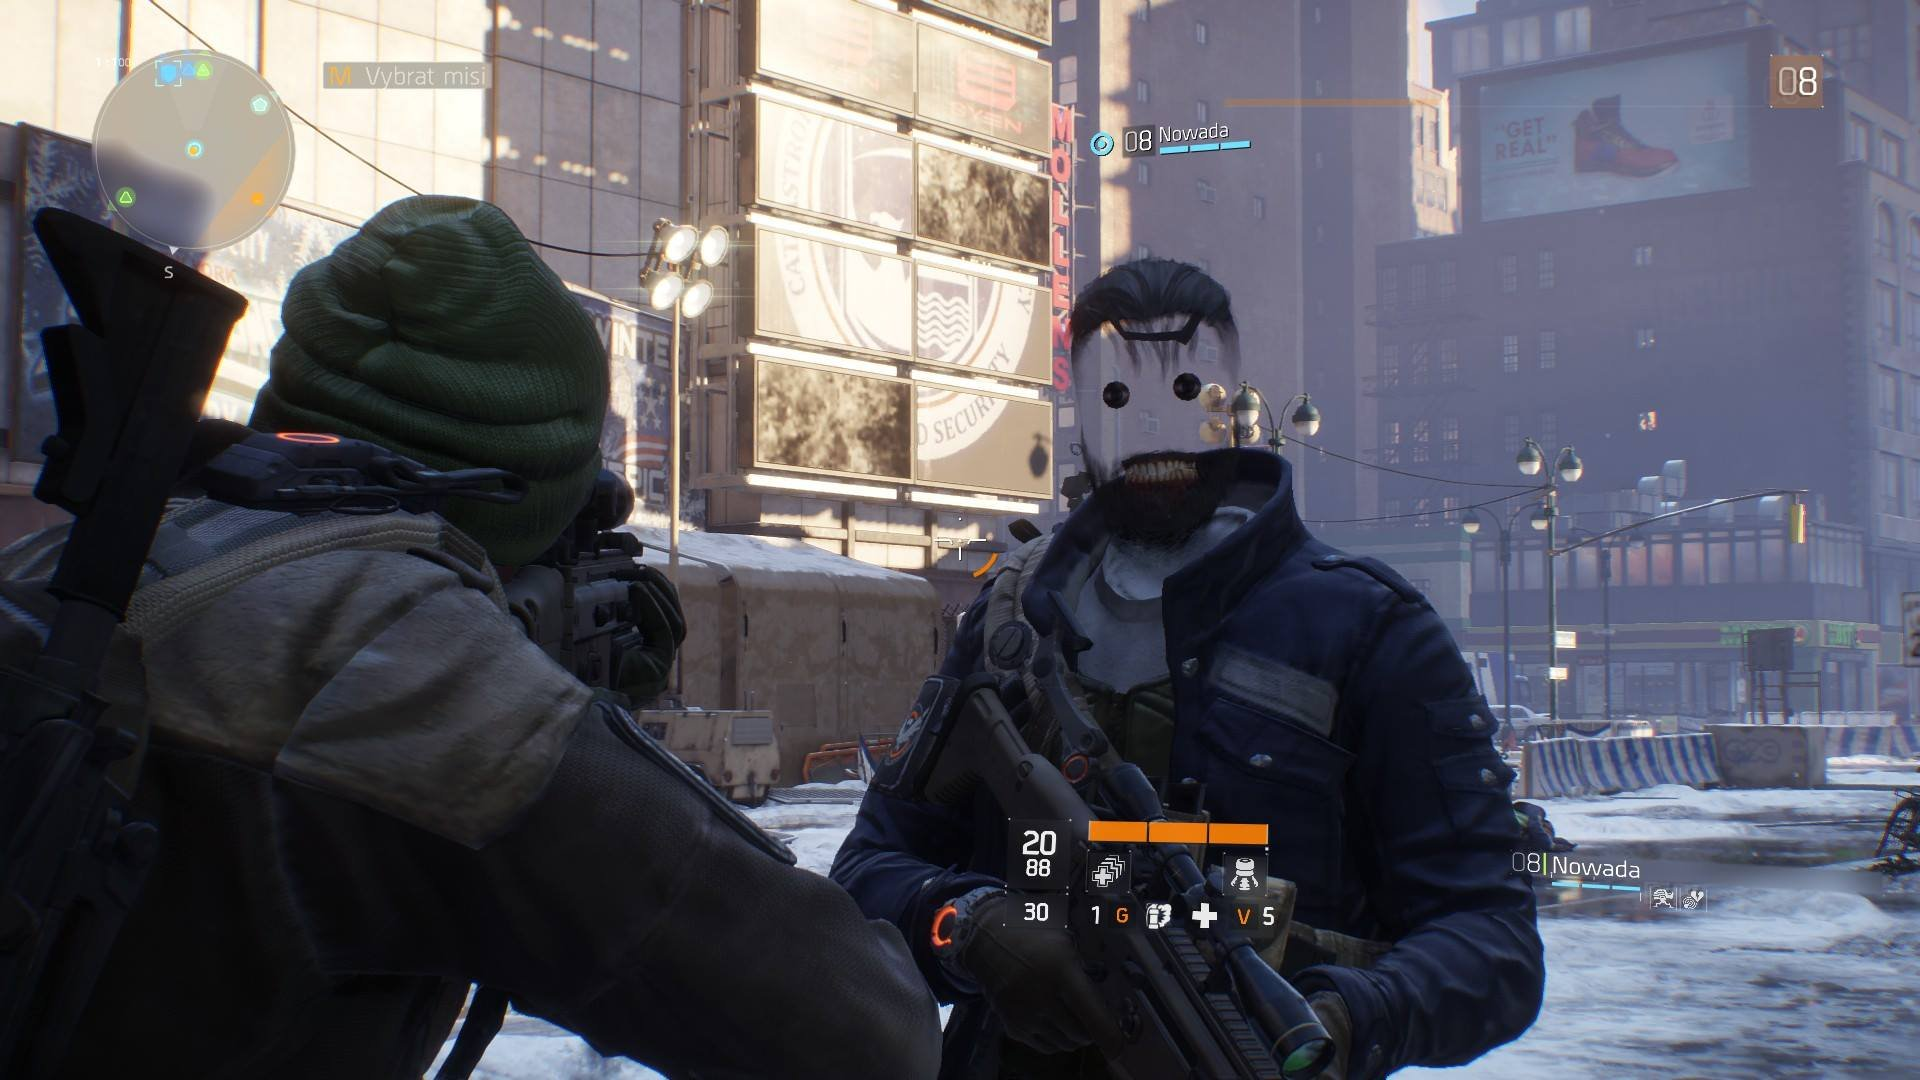 oscar trash The Division